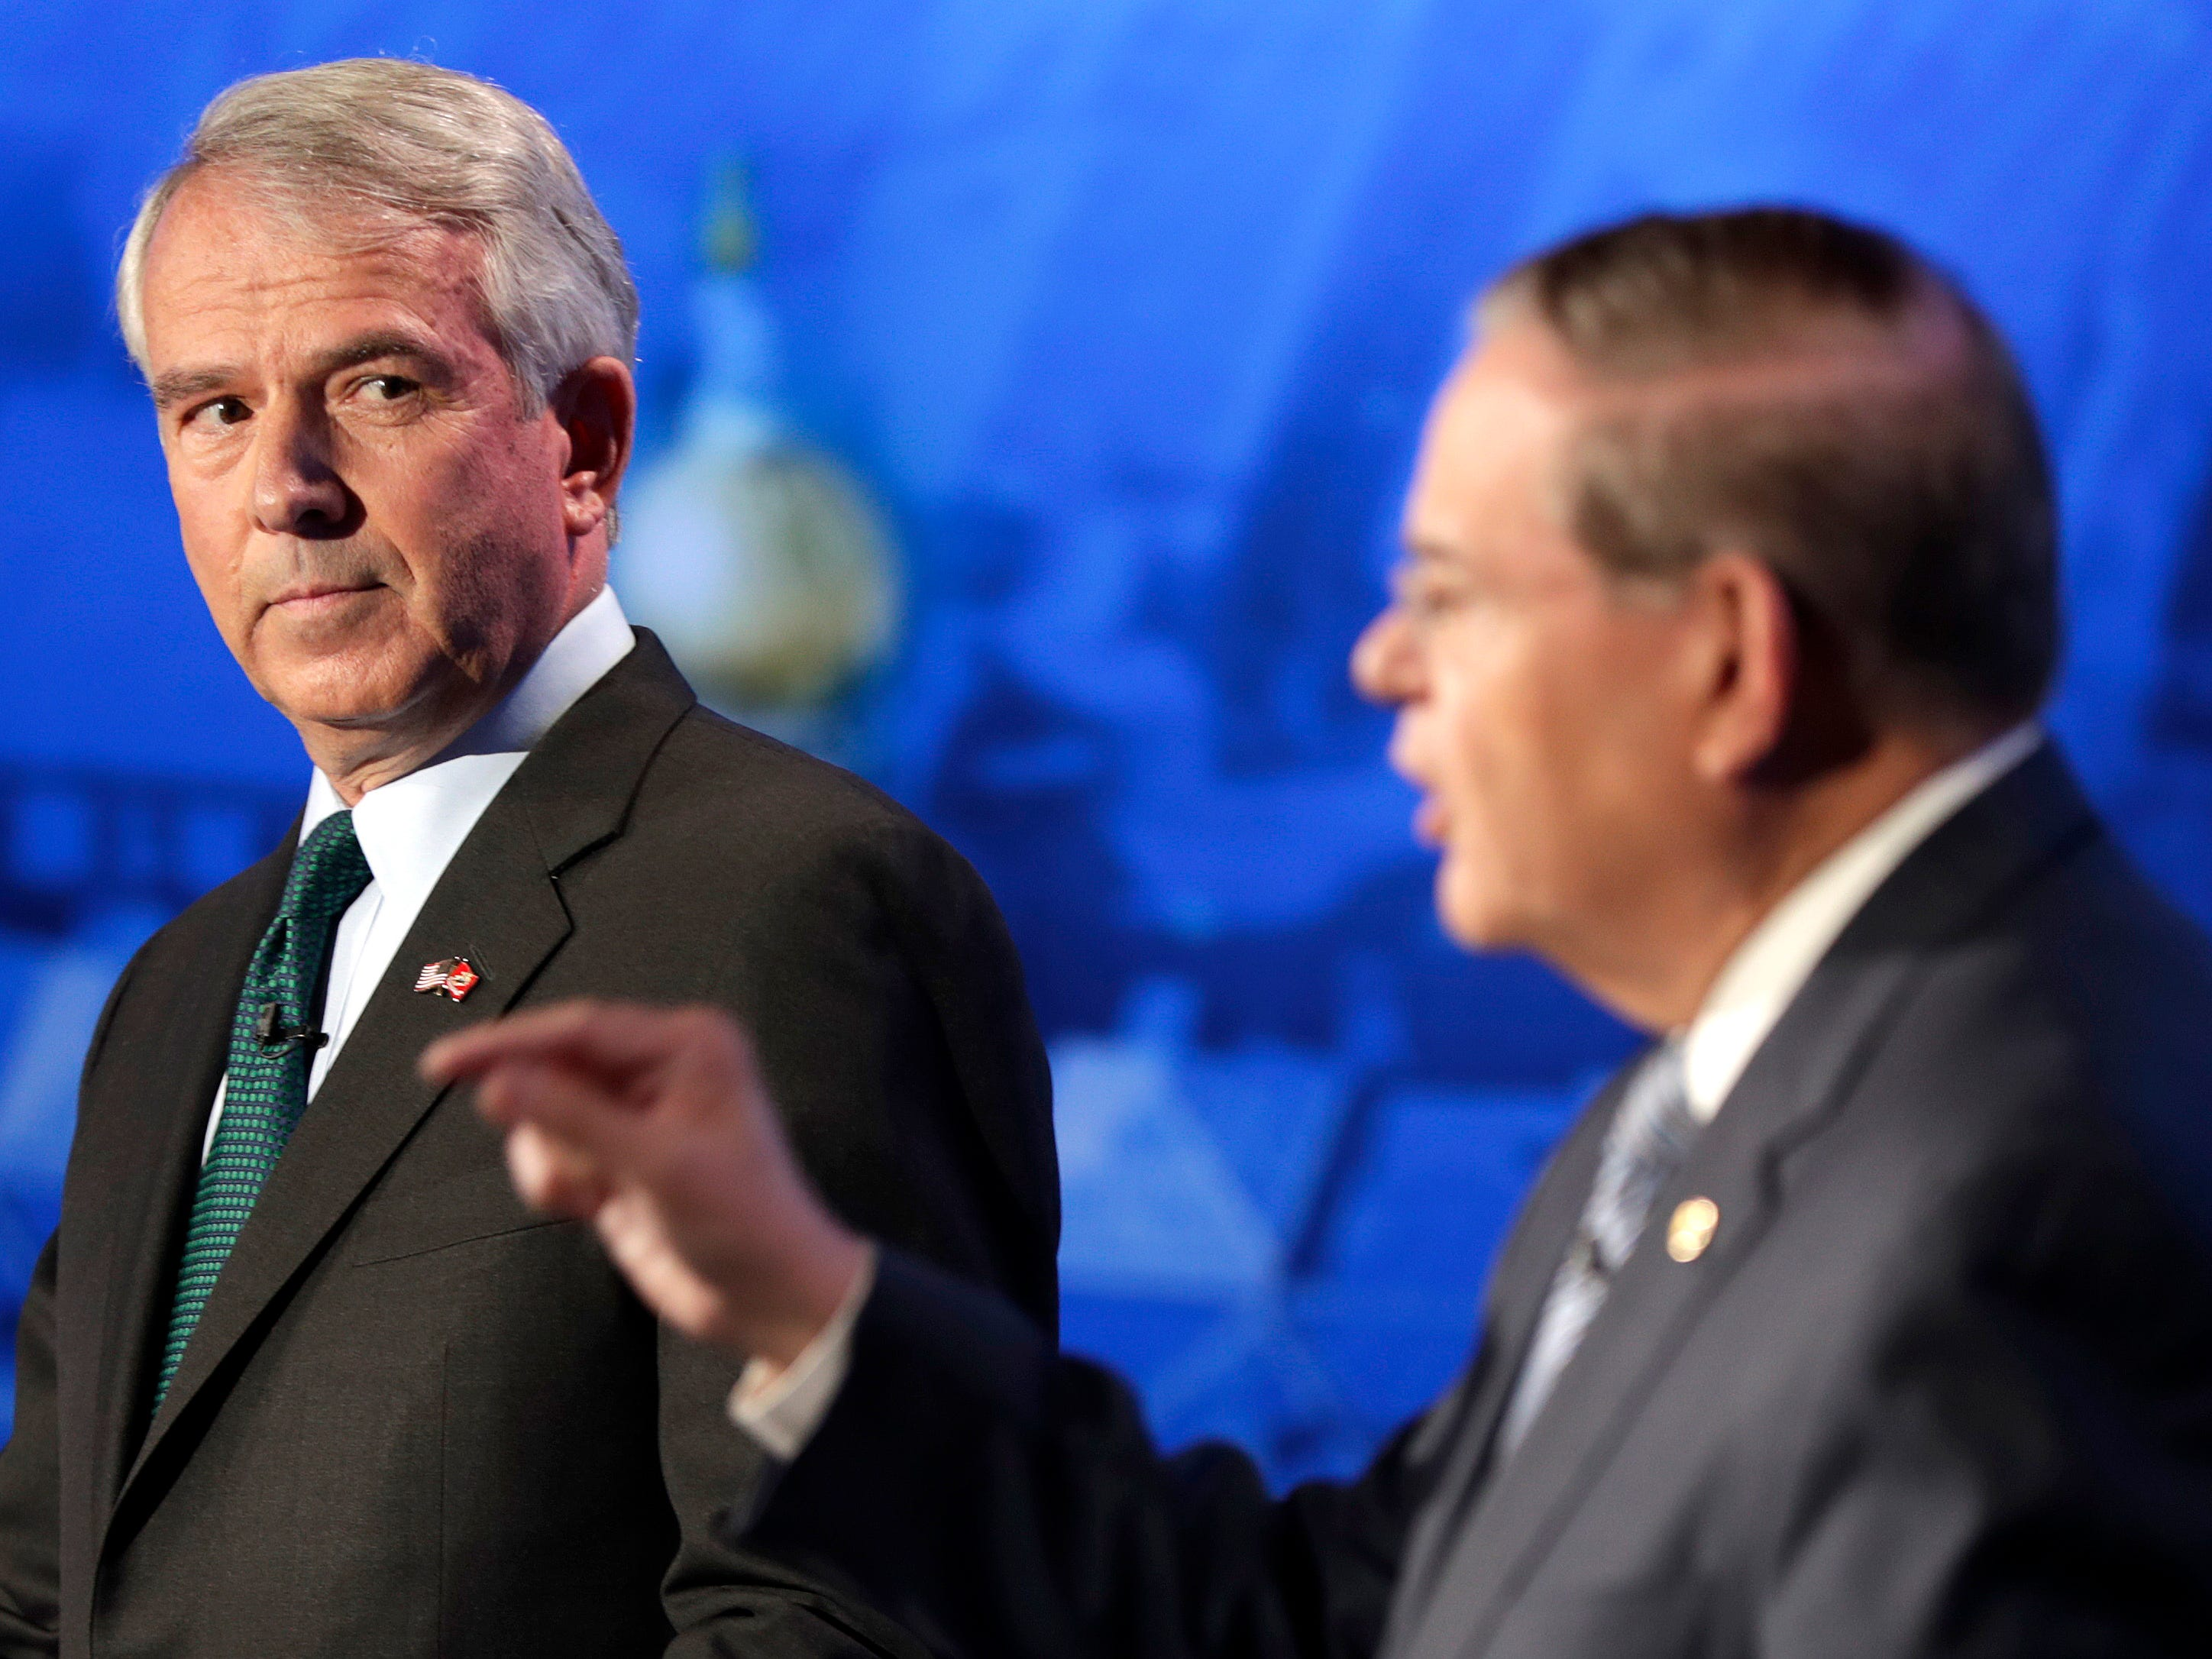 Bob Hugin, left, the Republican candidate for the U.S. Senate race in New Jersey, looks on as Sen. Bob Menendez, the Democrat candidate, speaks during a debate, Wednesday, Oct. 24, 2018, in Newark, N.J.